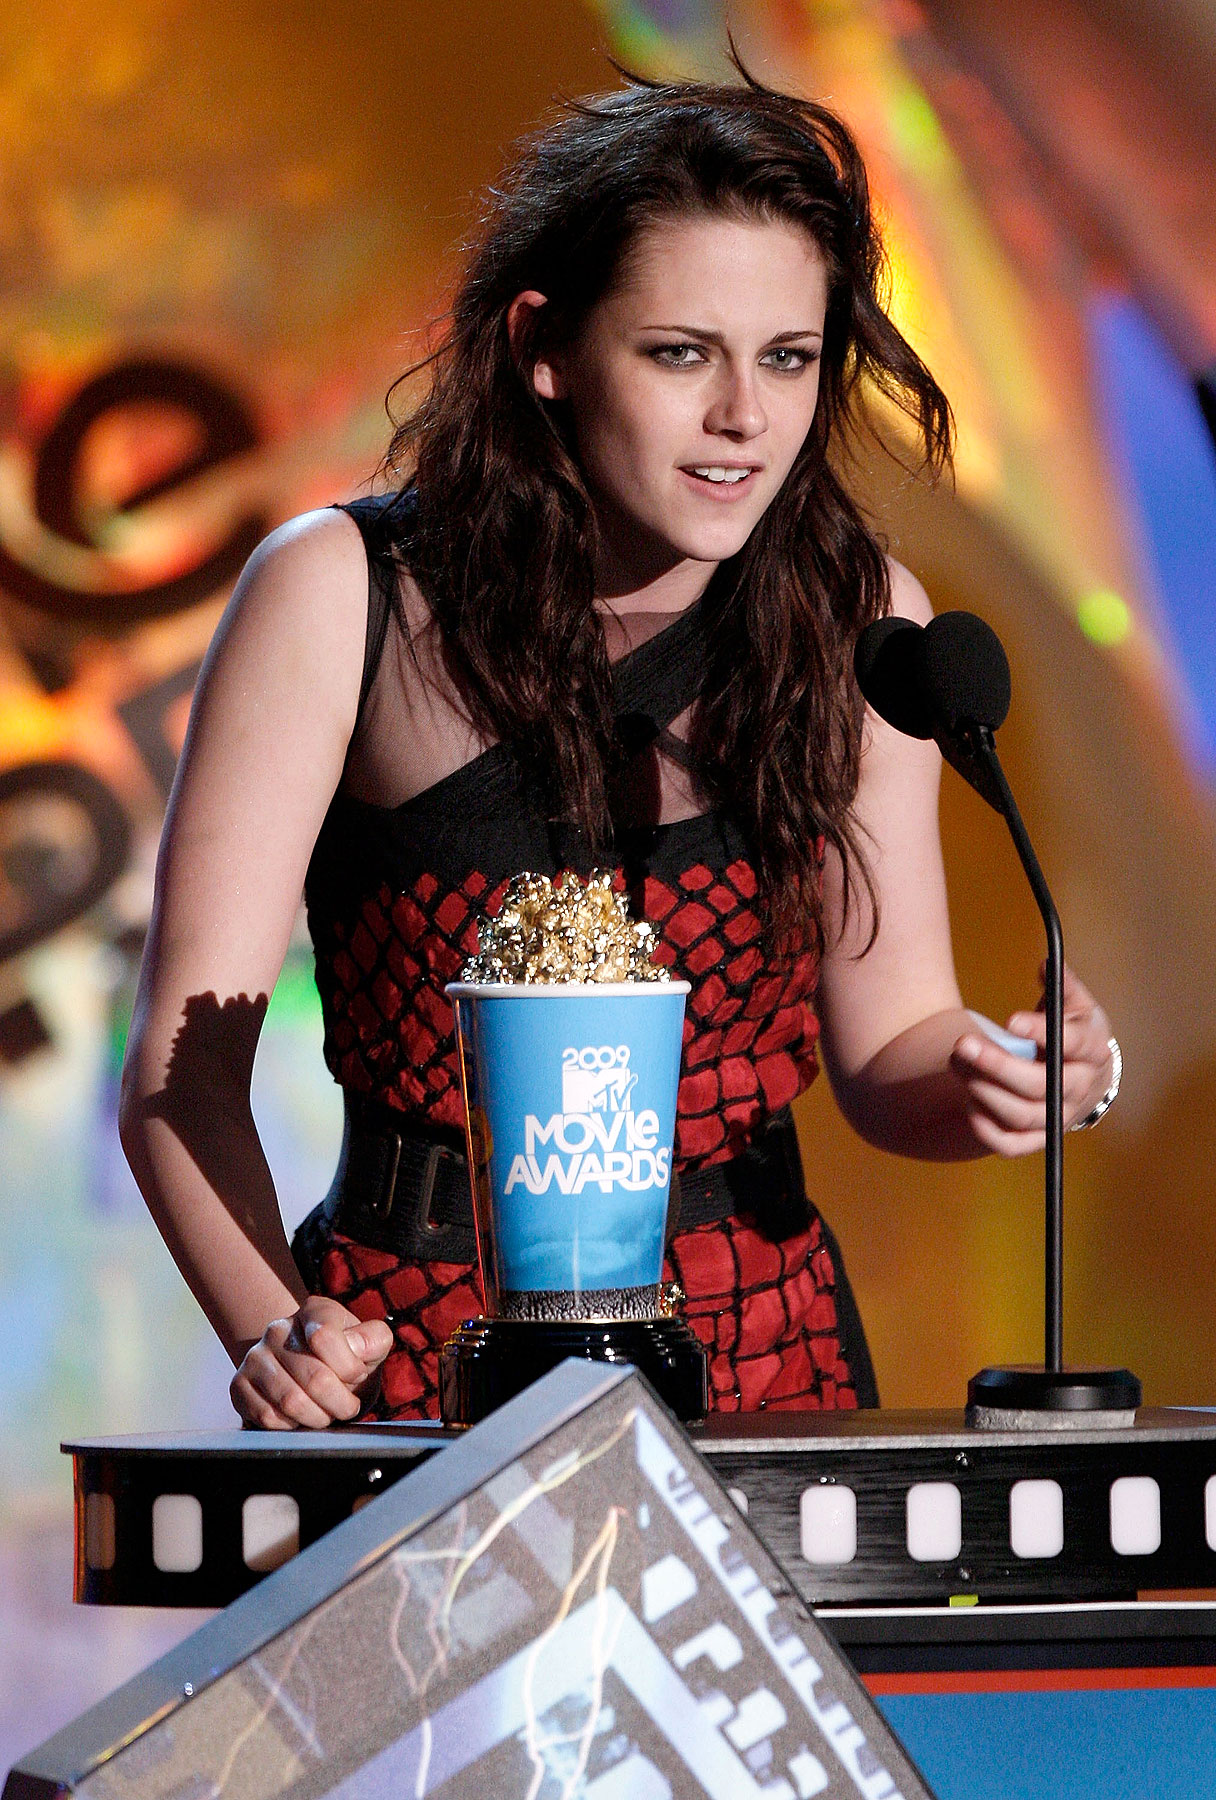 Kristen Stewart's Co-Star Explains Her Popcorn Spill